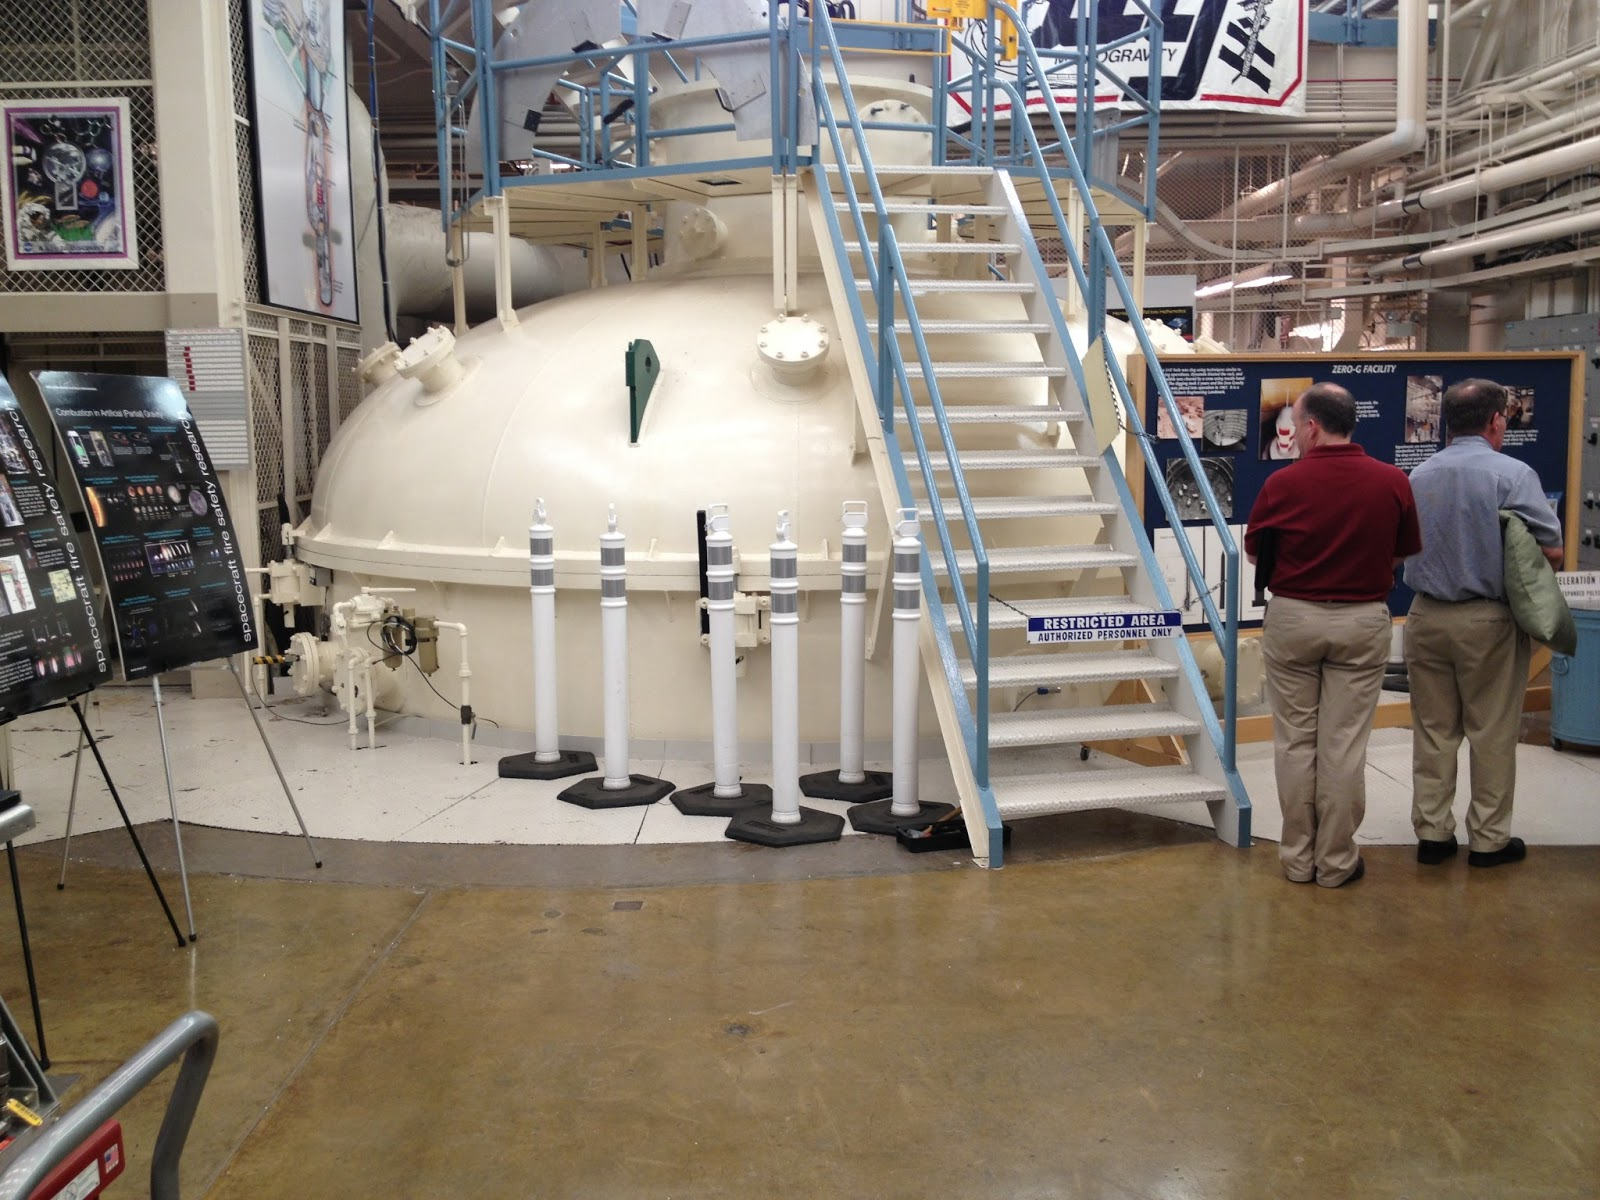 nasa glenn research center mwrap - photo #15